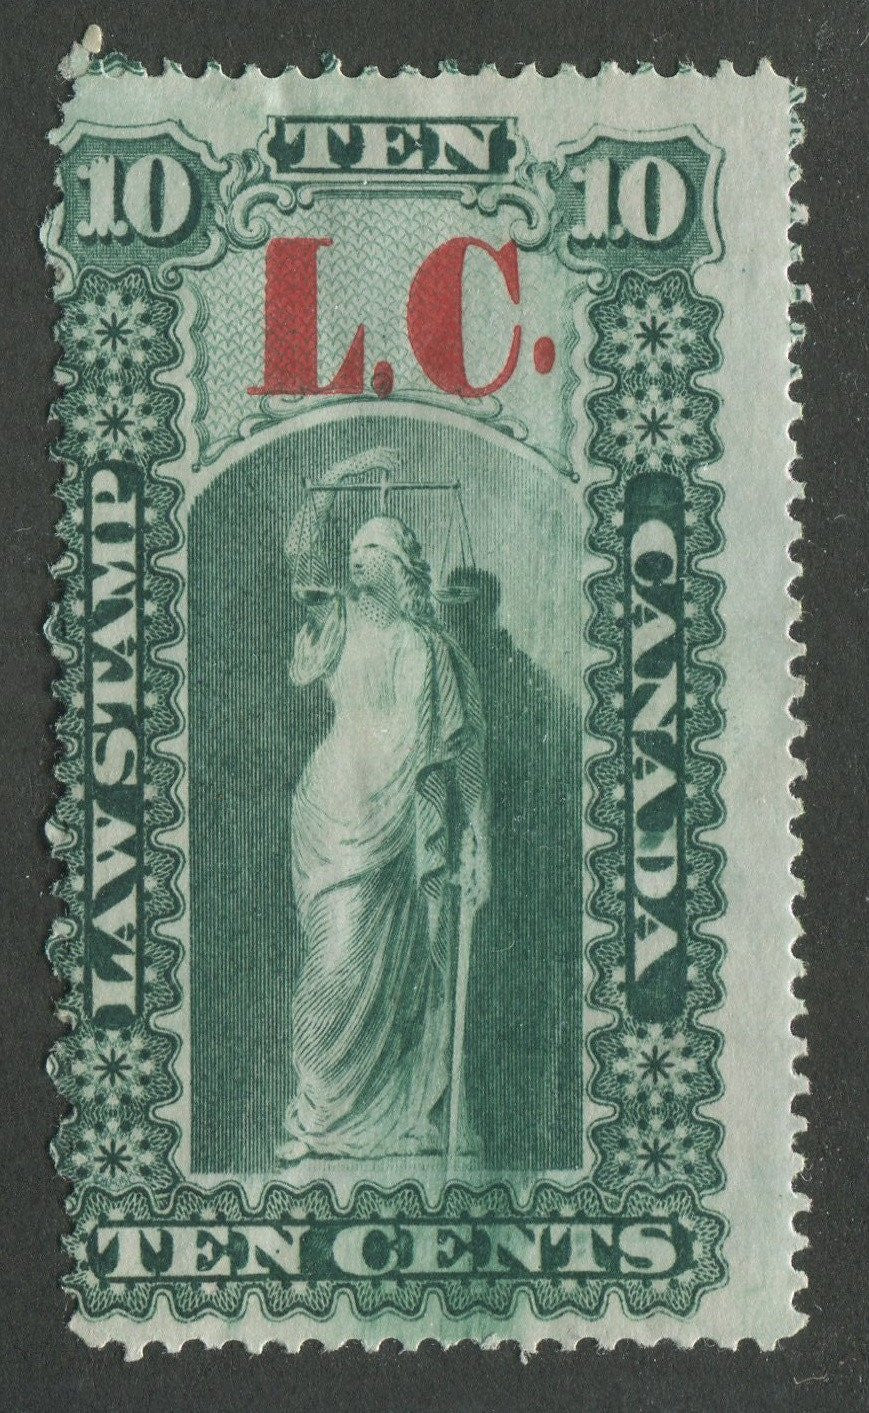 0002QL1707 - QL2 - Mint - UNLISTED - Deveney Stamps Ltd. Canadian Stamps